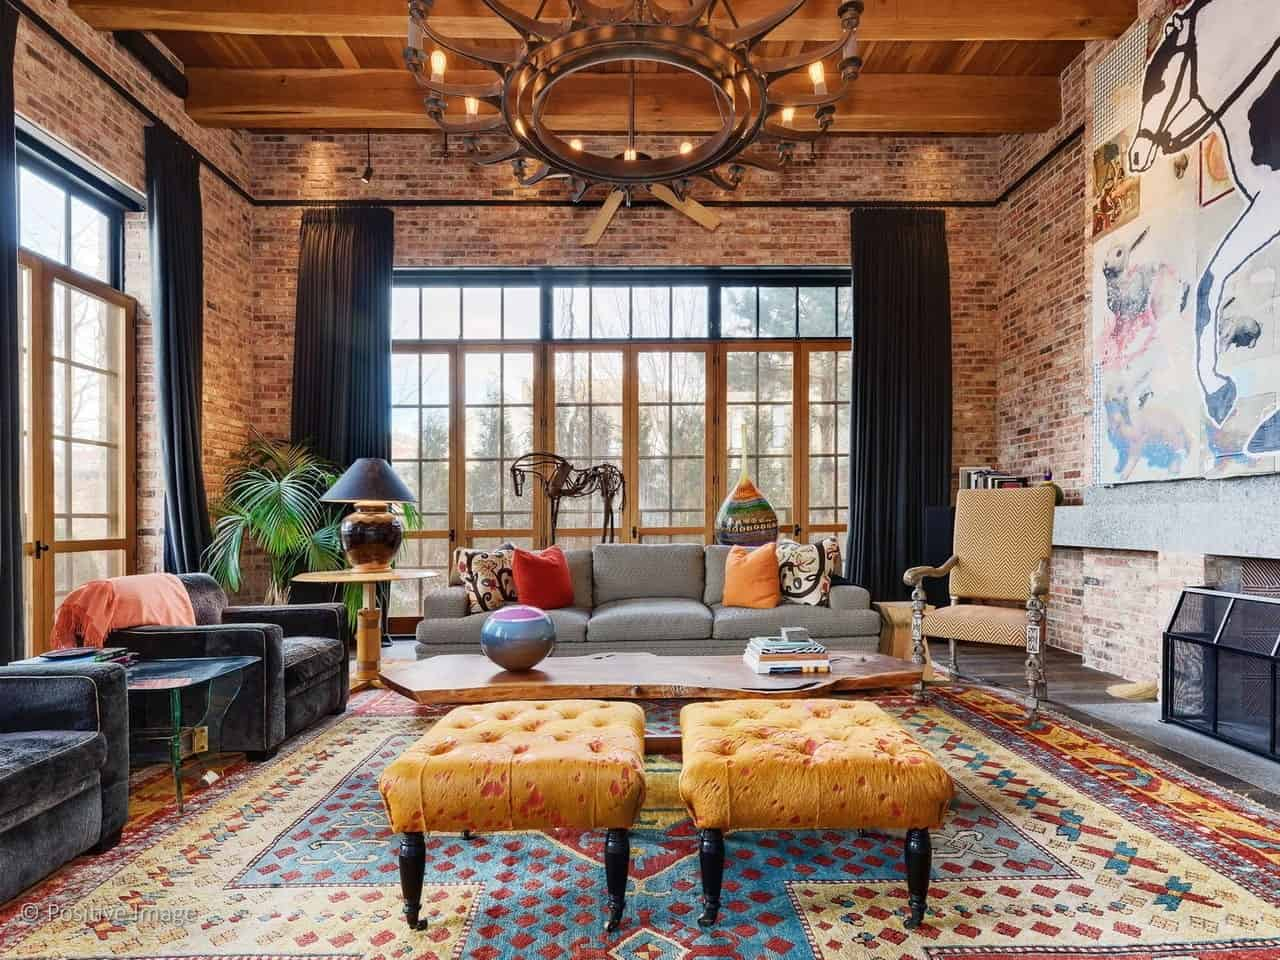 Industrial-style living interior with exposed brick walls, candelabra chandelier, beam ceiling, and colorful area rug.